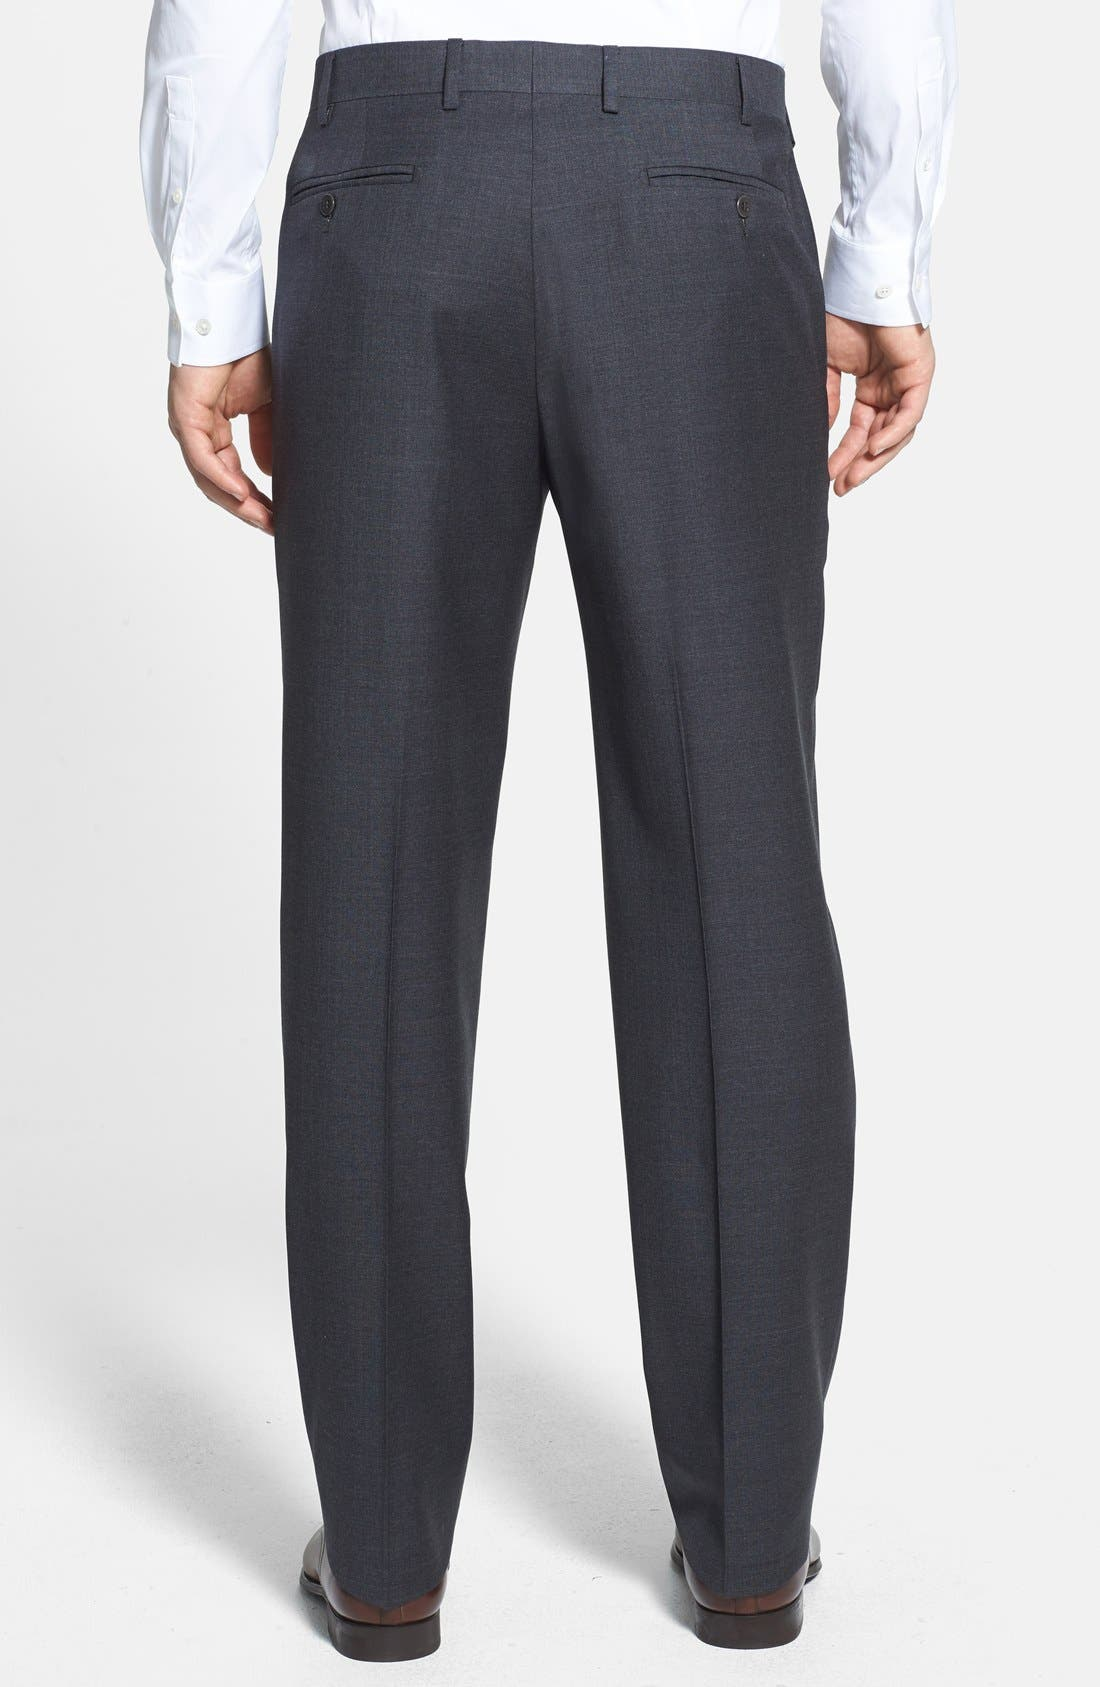 'Devon' Flat Front Wool Trousers,                             Alternate thumbnail 13, color,